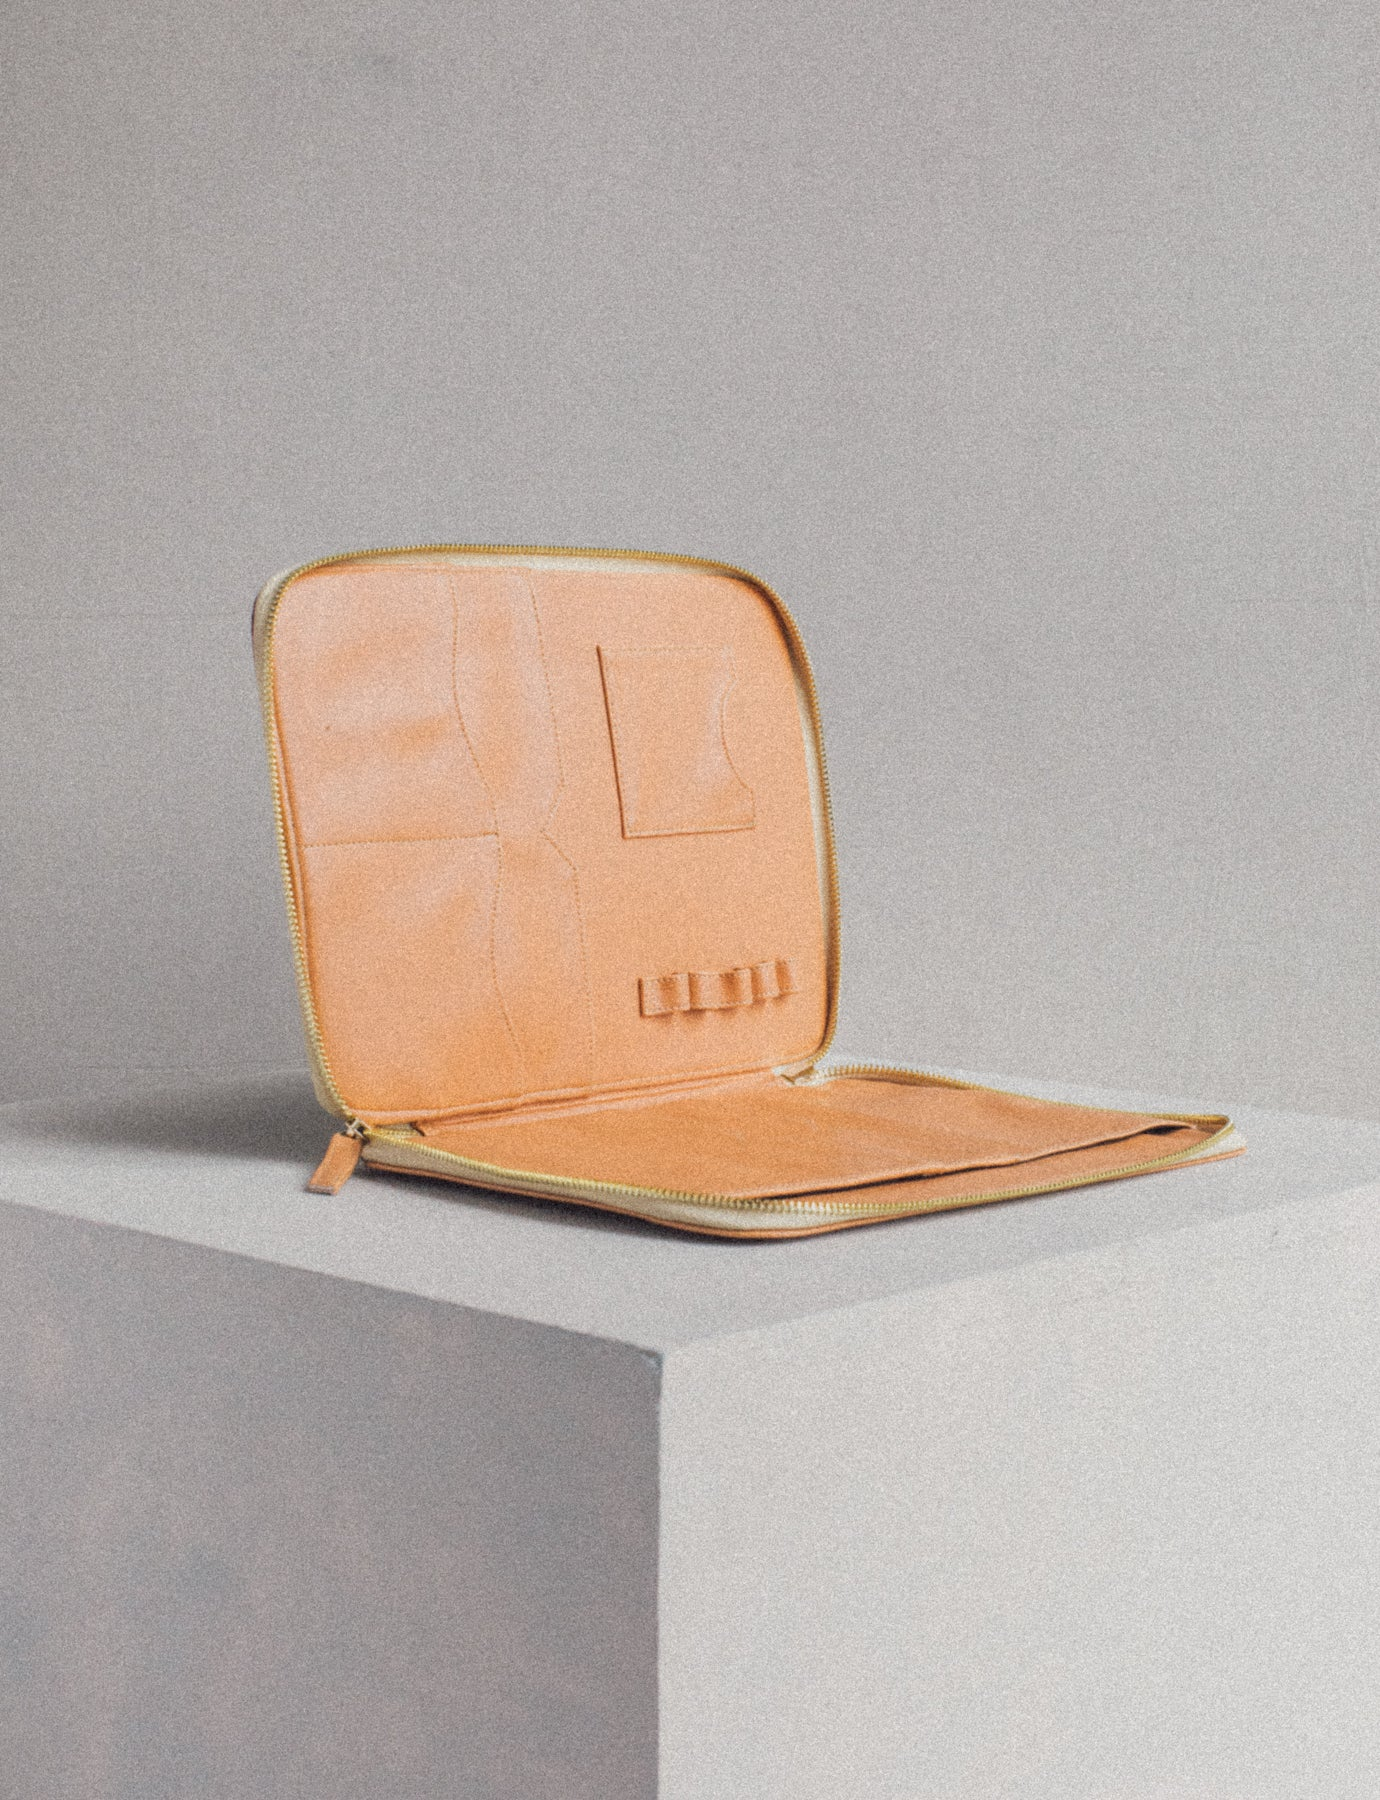 Habi Binder in Salmon Pink